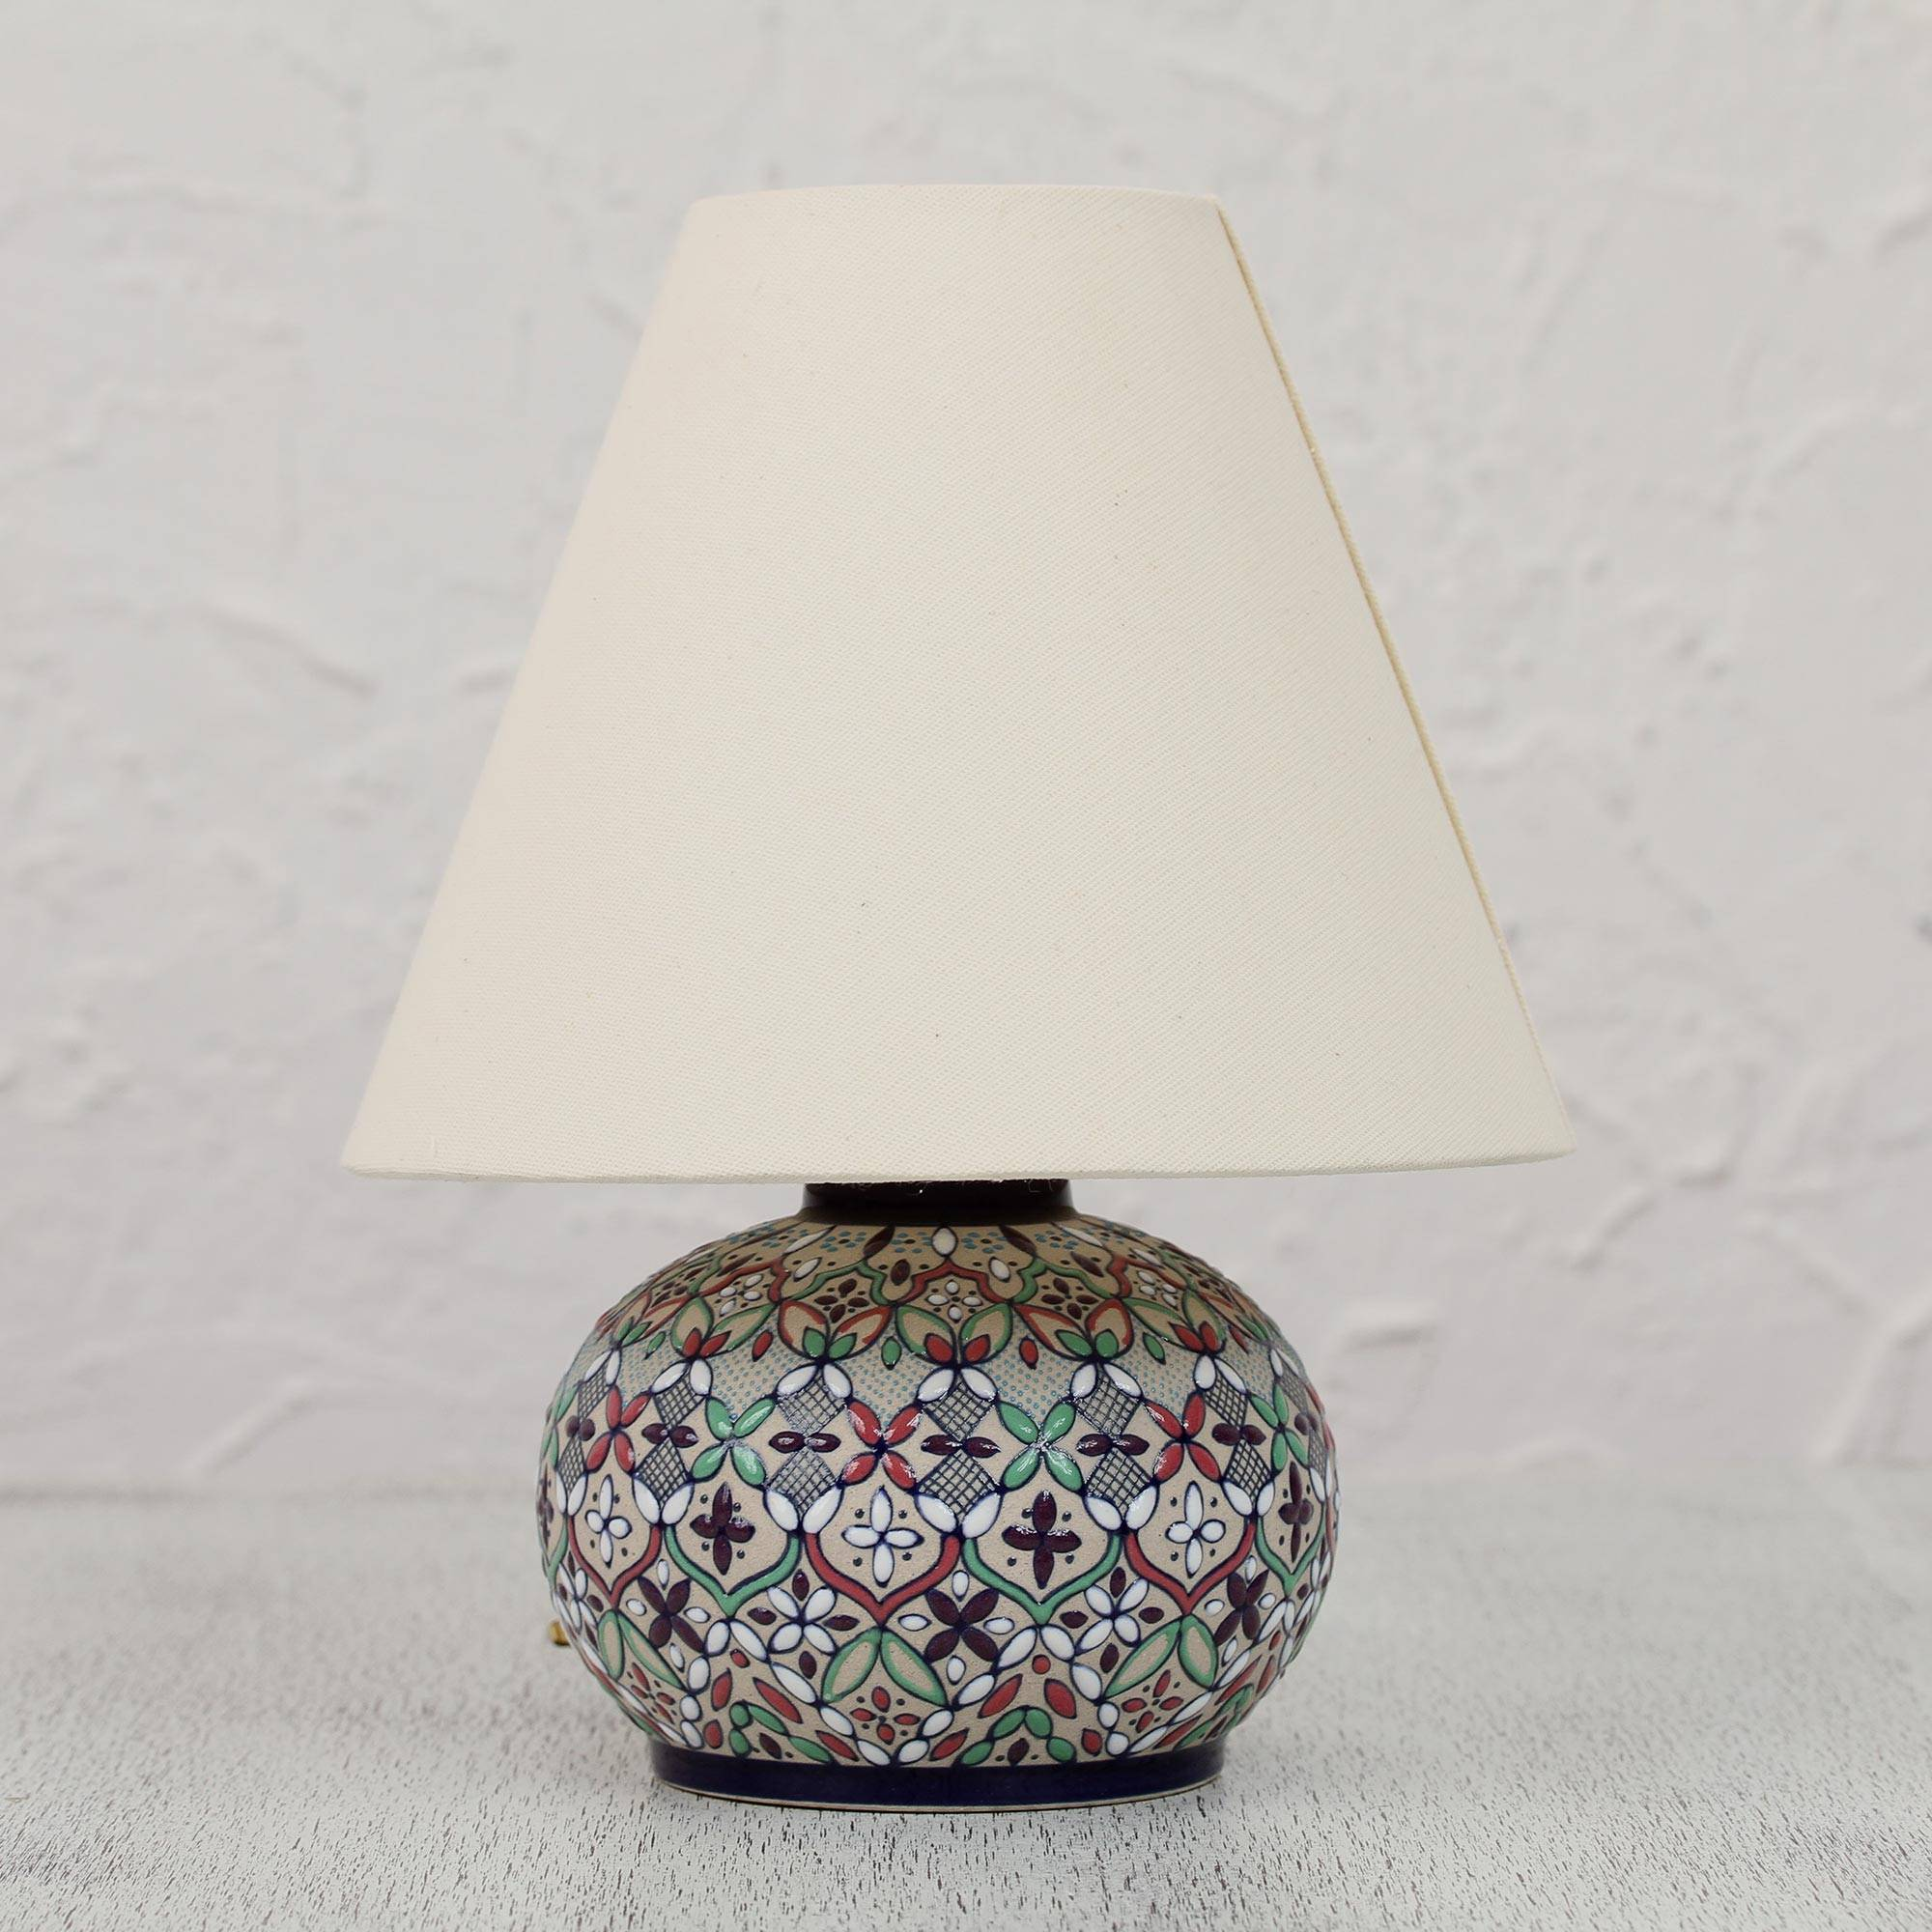 Colorful Ceramic Table Lamp And Shade Handcrafted In Mexico, U0027Guanajuato  Wildflowersu0027